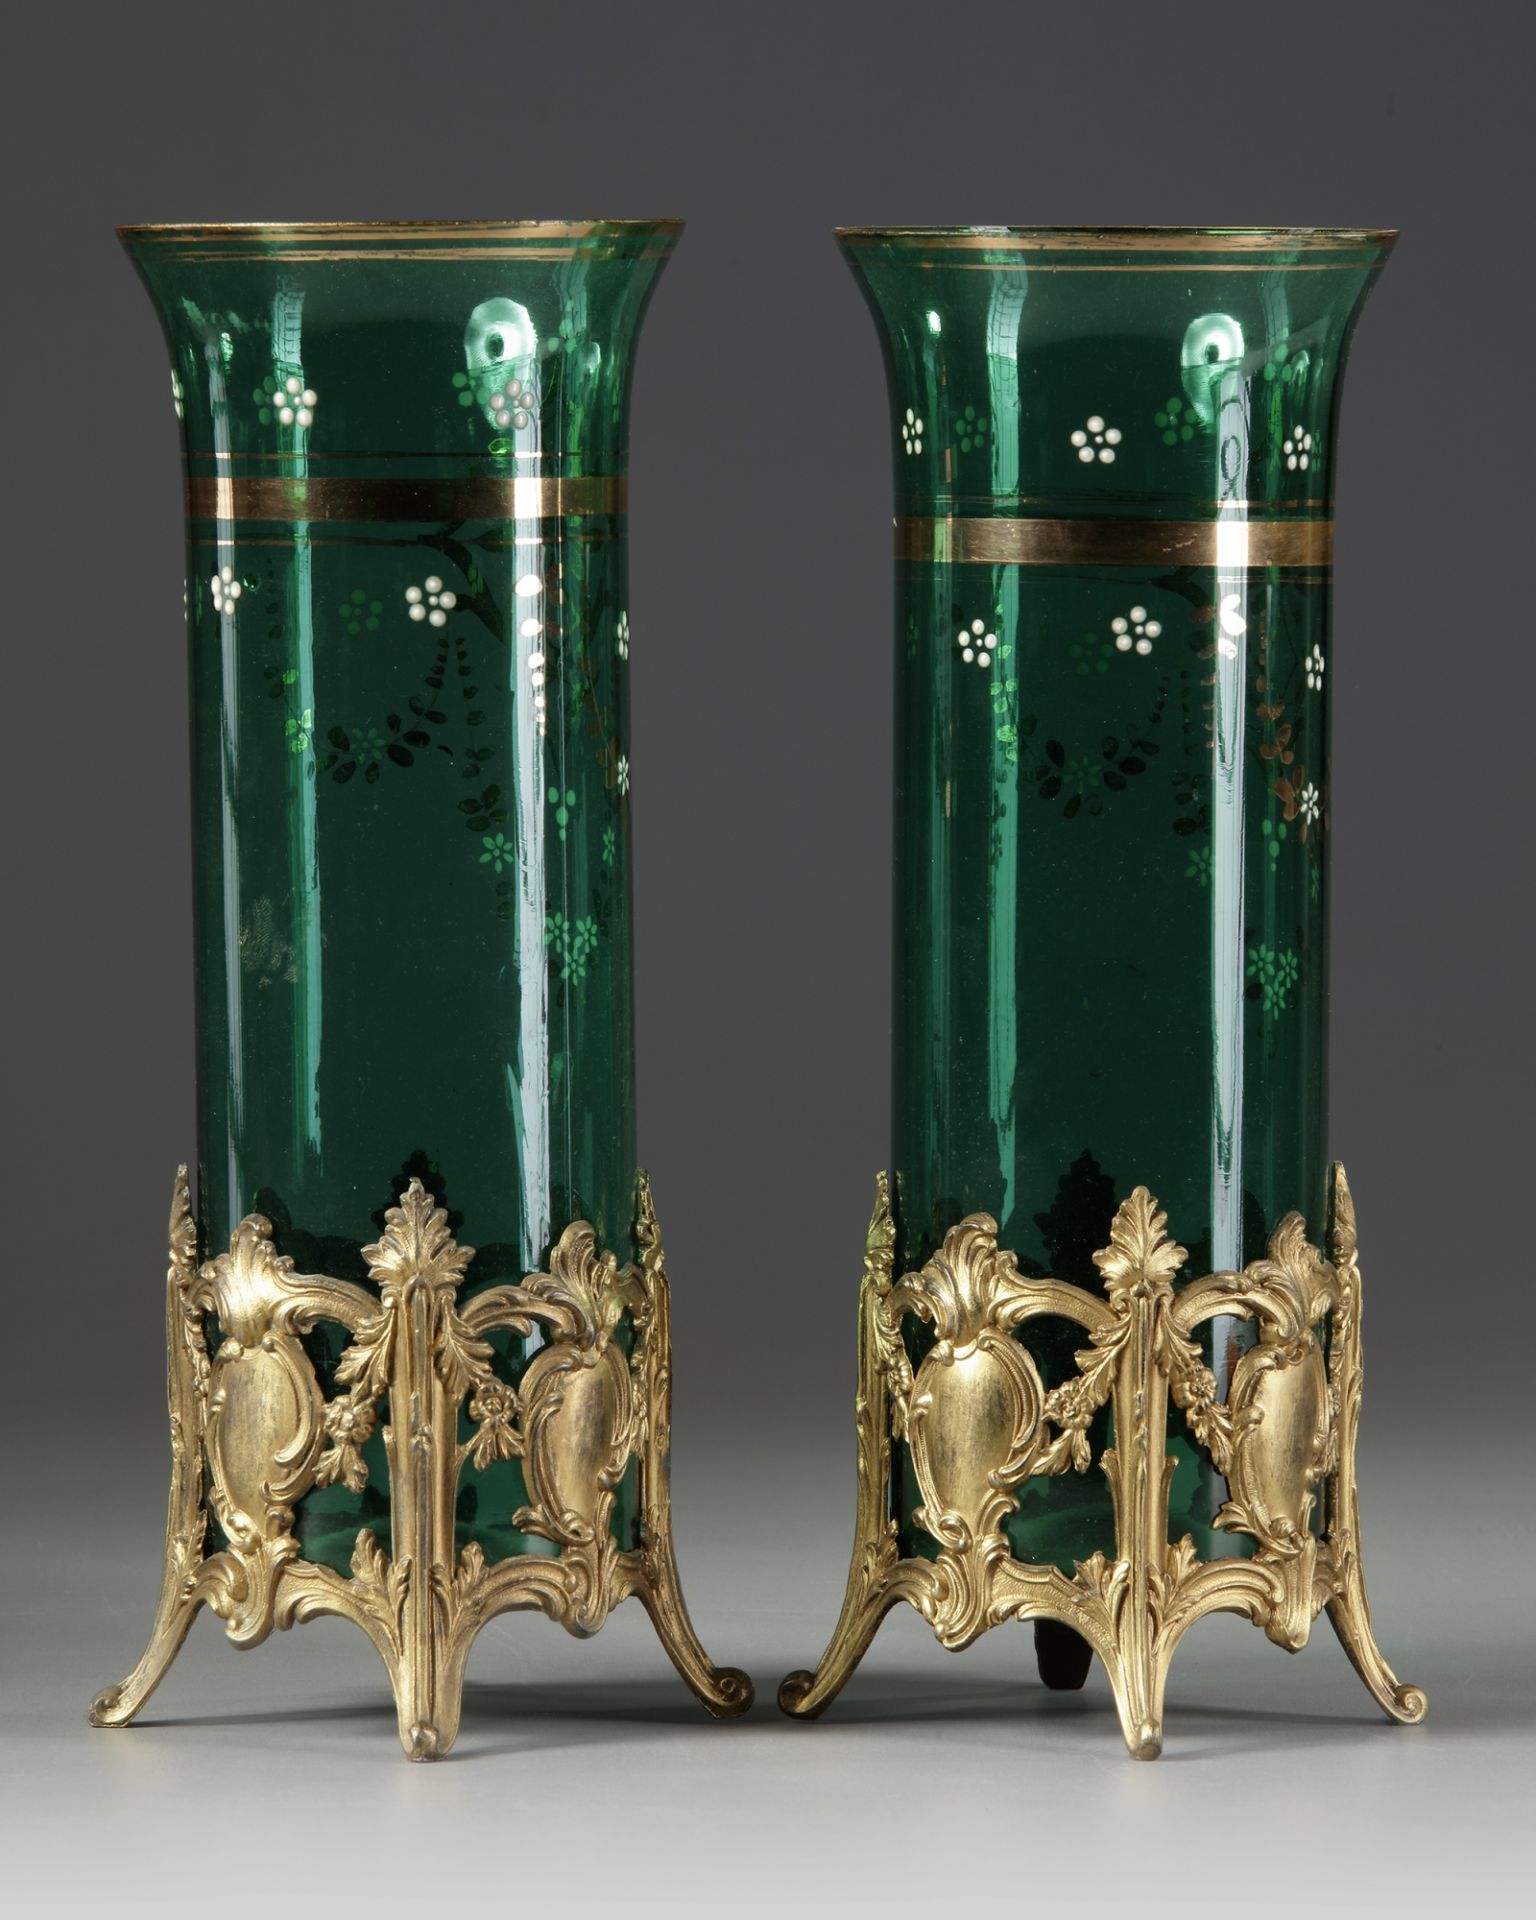 A PAIR OF GREEN GLASS VASES, LATE 19TH CENTURY - Image 2 of 3